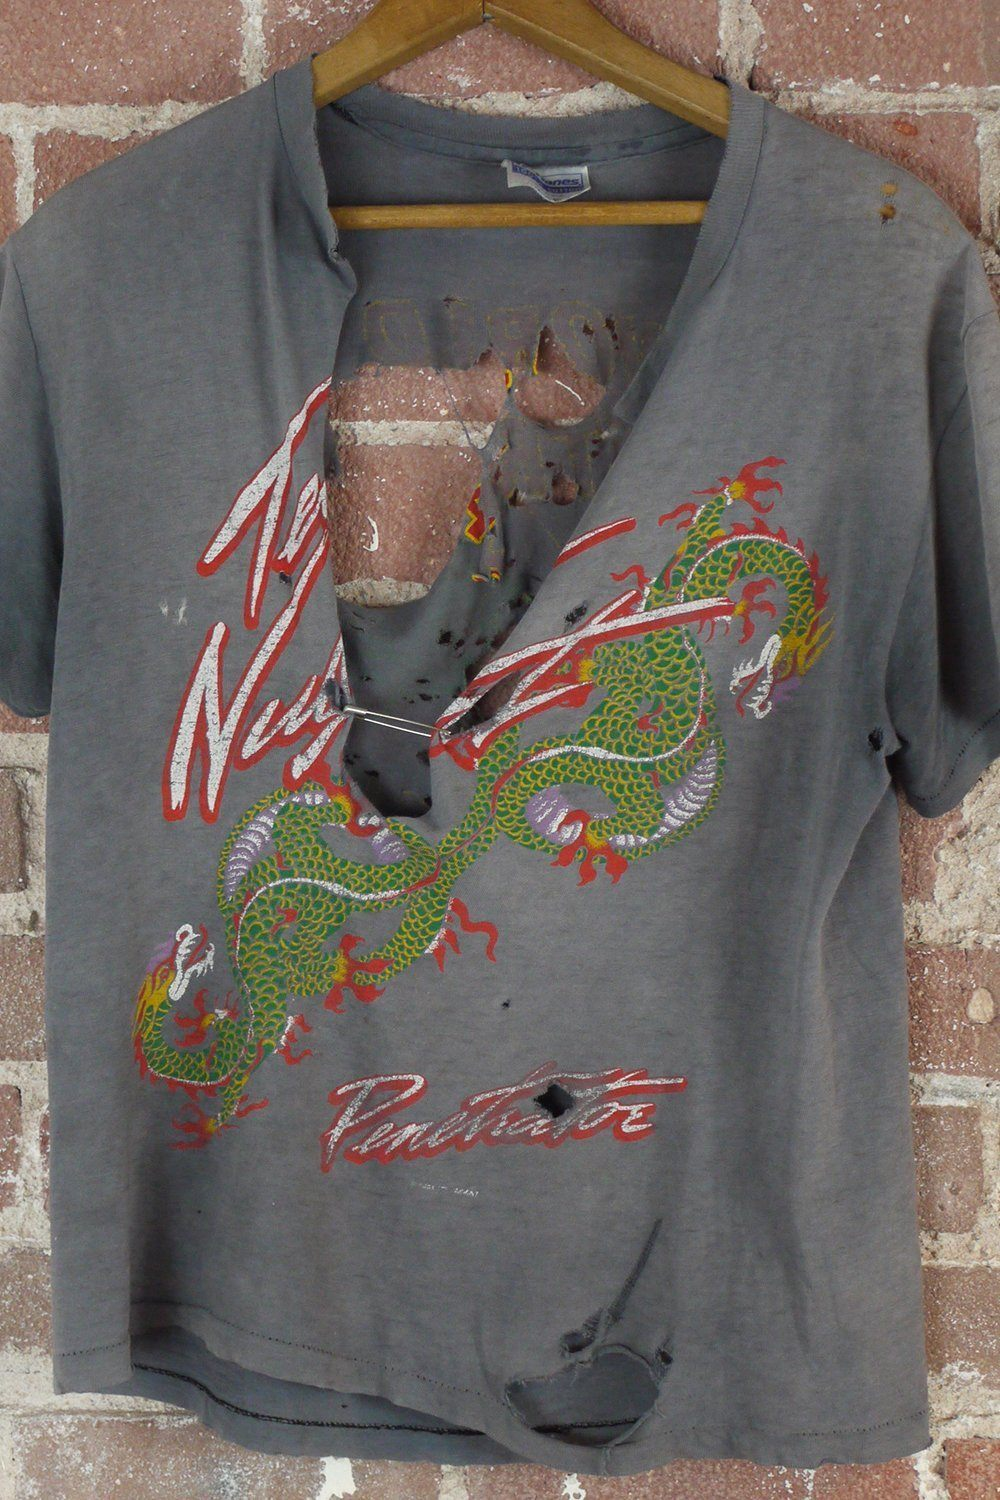 1984 Ted Nugent Thrashed World Penetration Dragon Tour Shirt